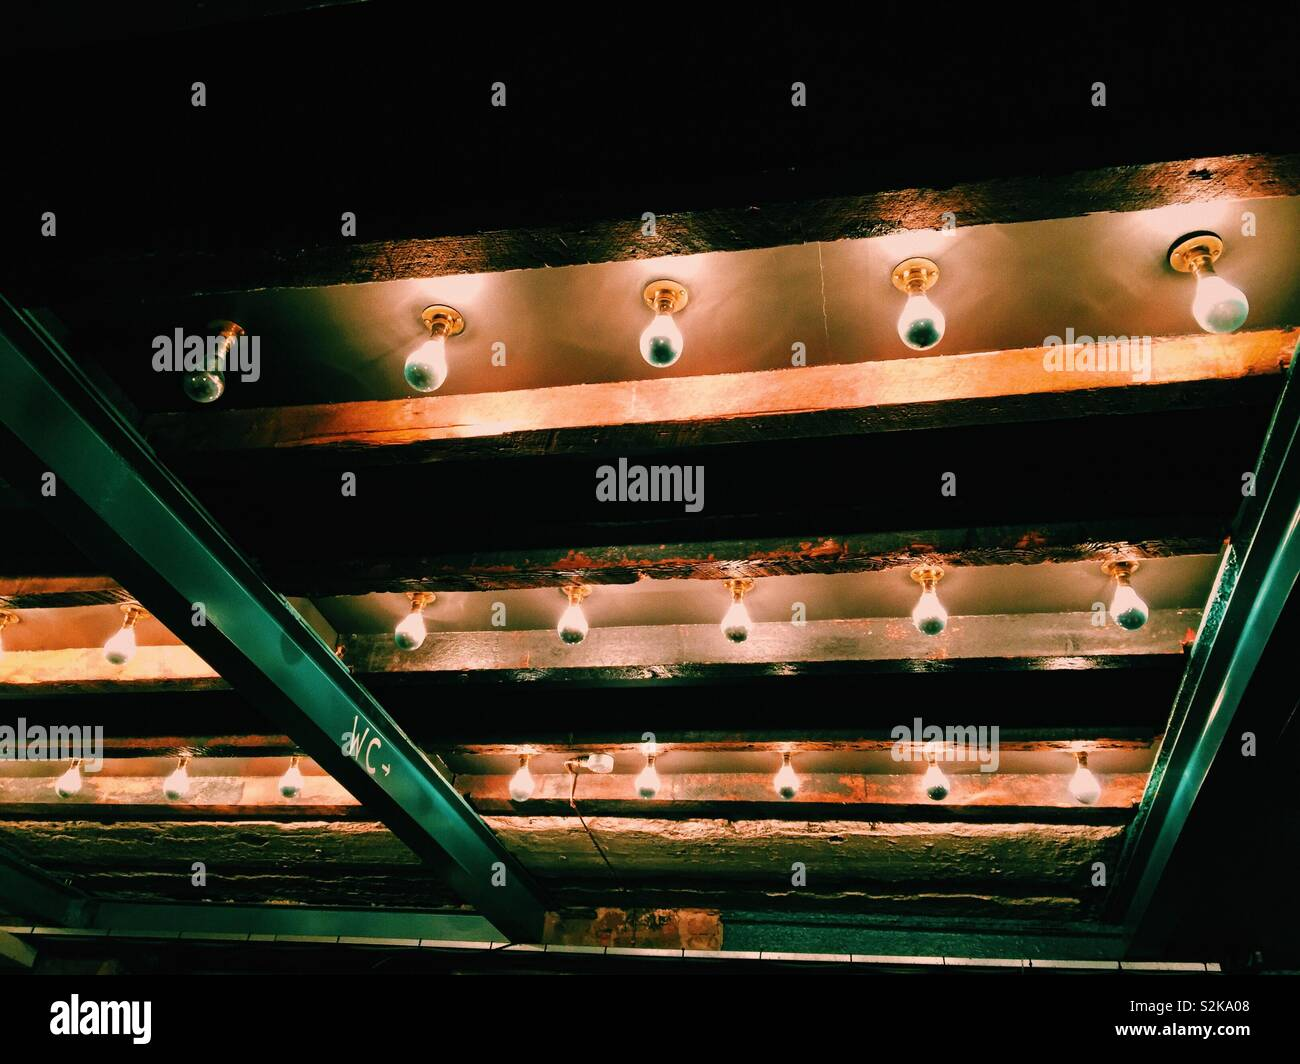 Ceiling with strips of bare bulb lights in restaurant bar. Carnival lights - Stock Image